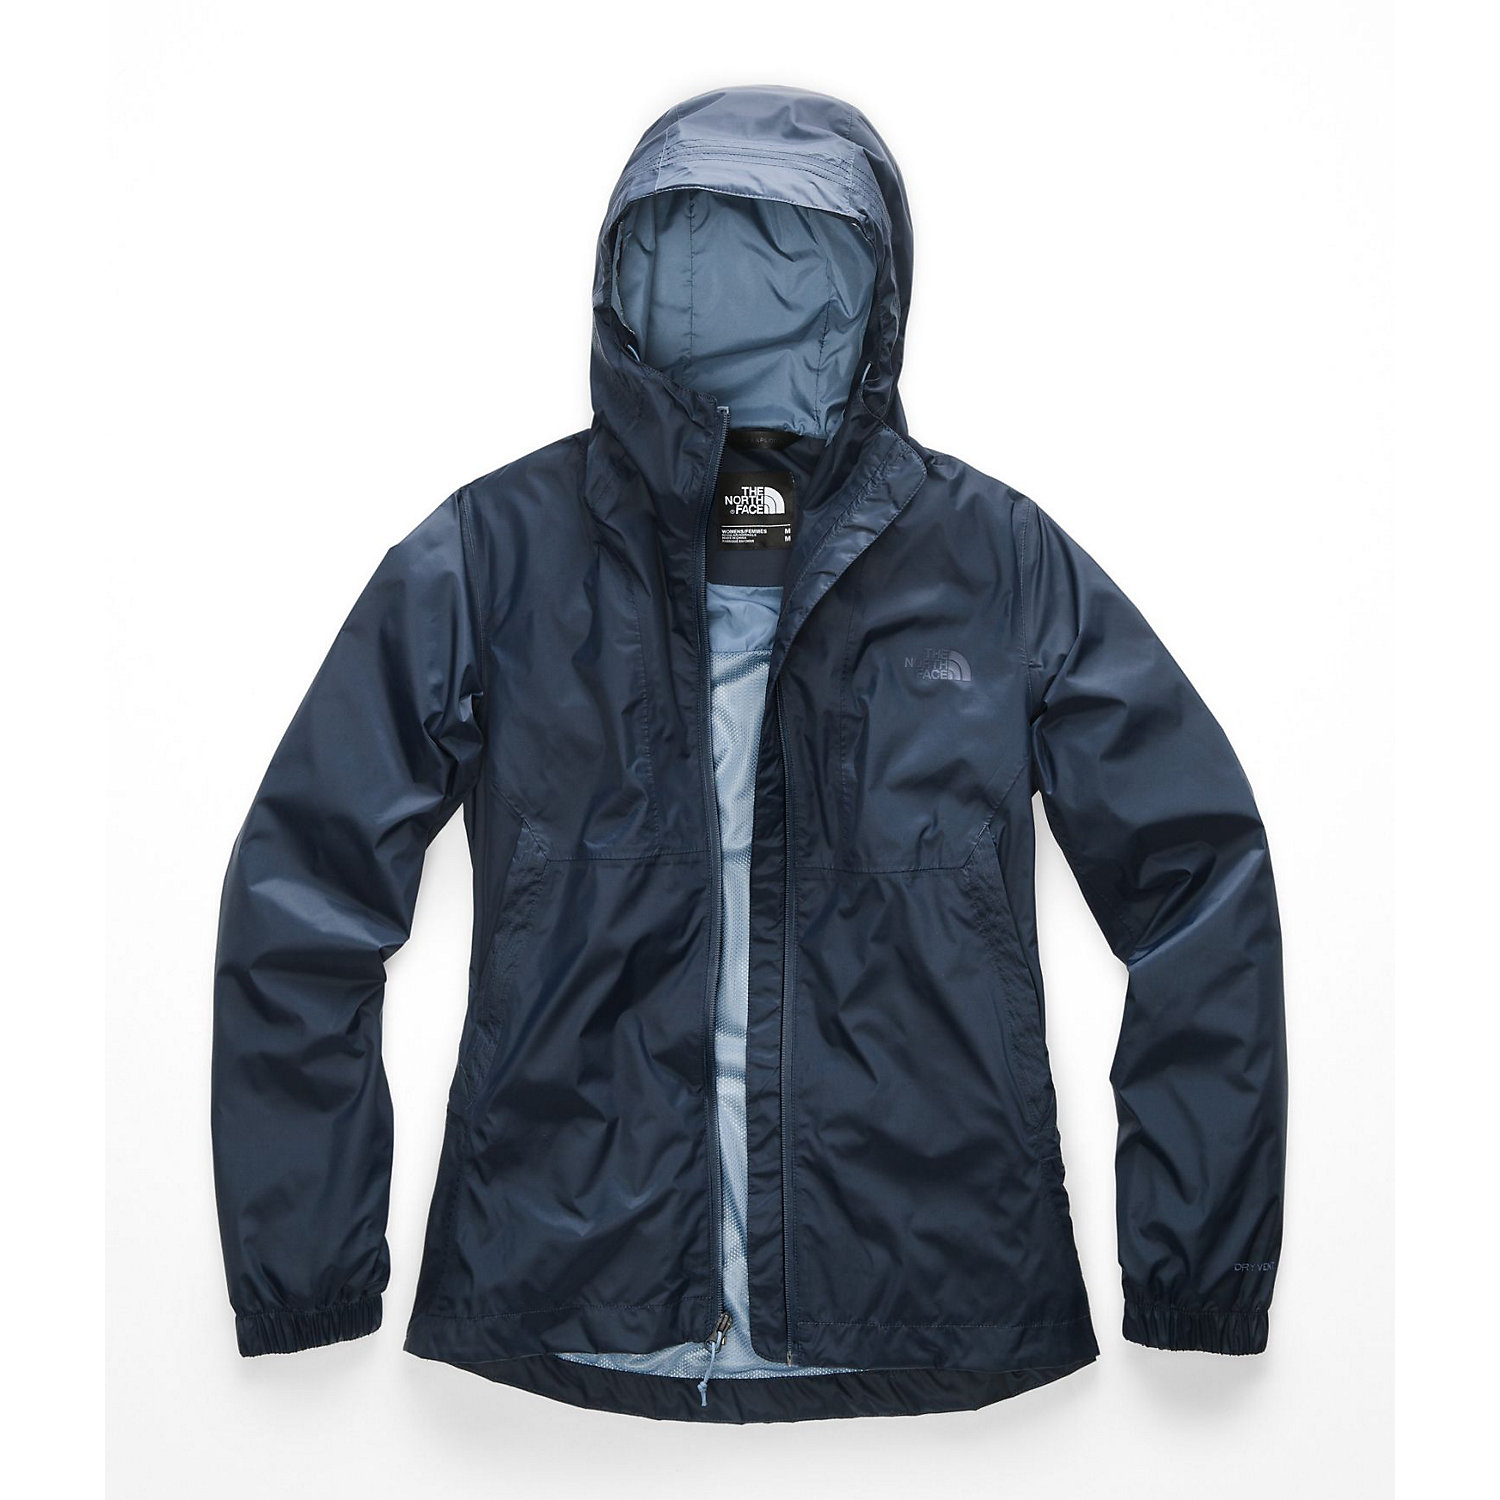 64a112fbd The North Face Women's Phantastic Rain Jacket